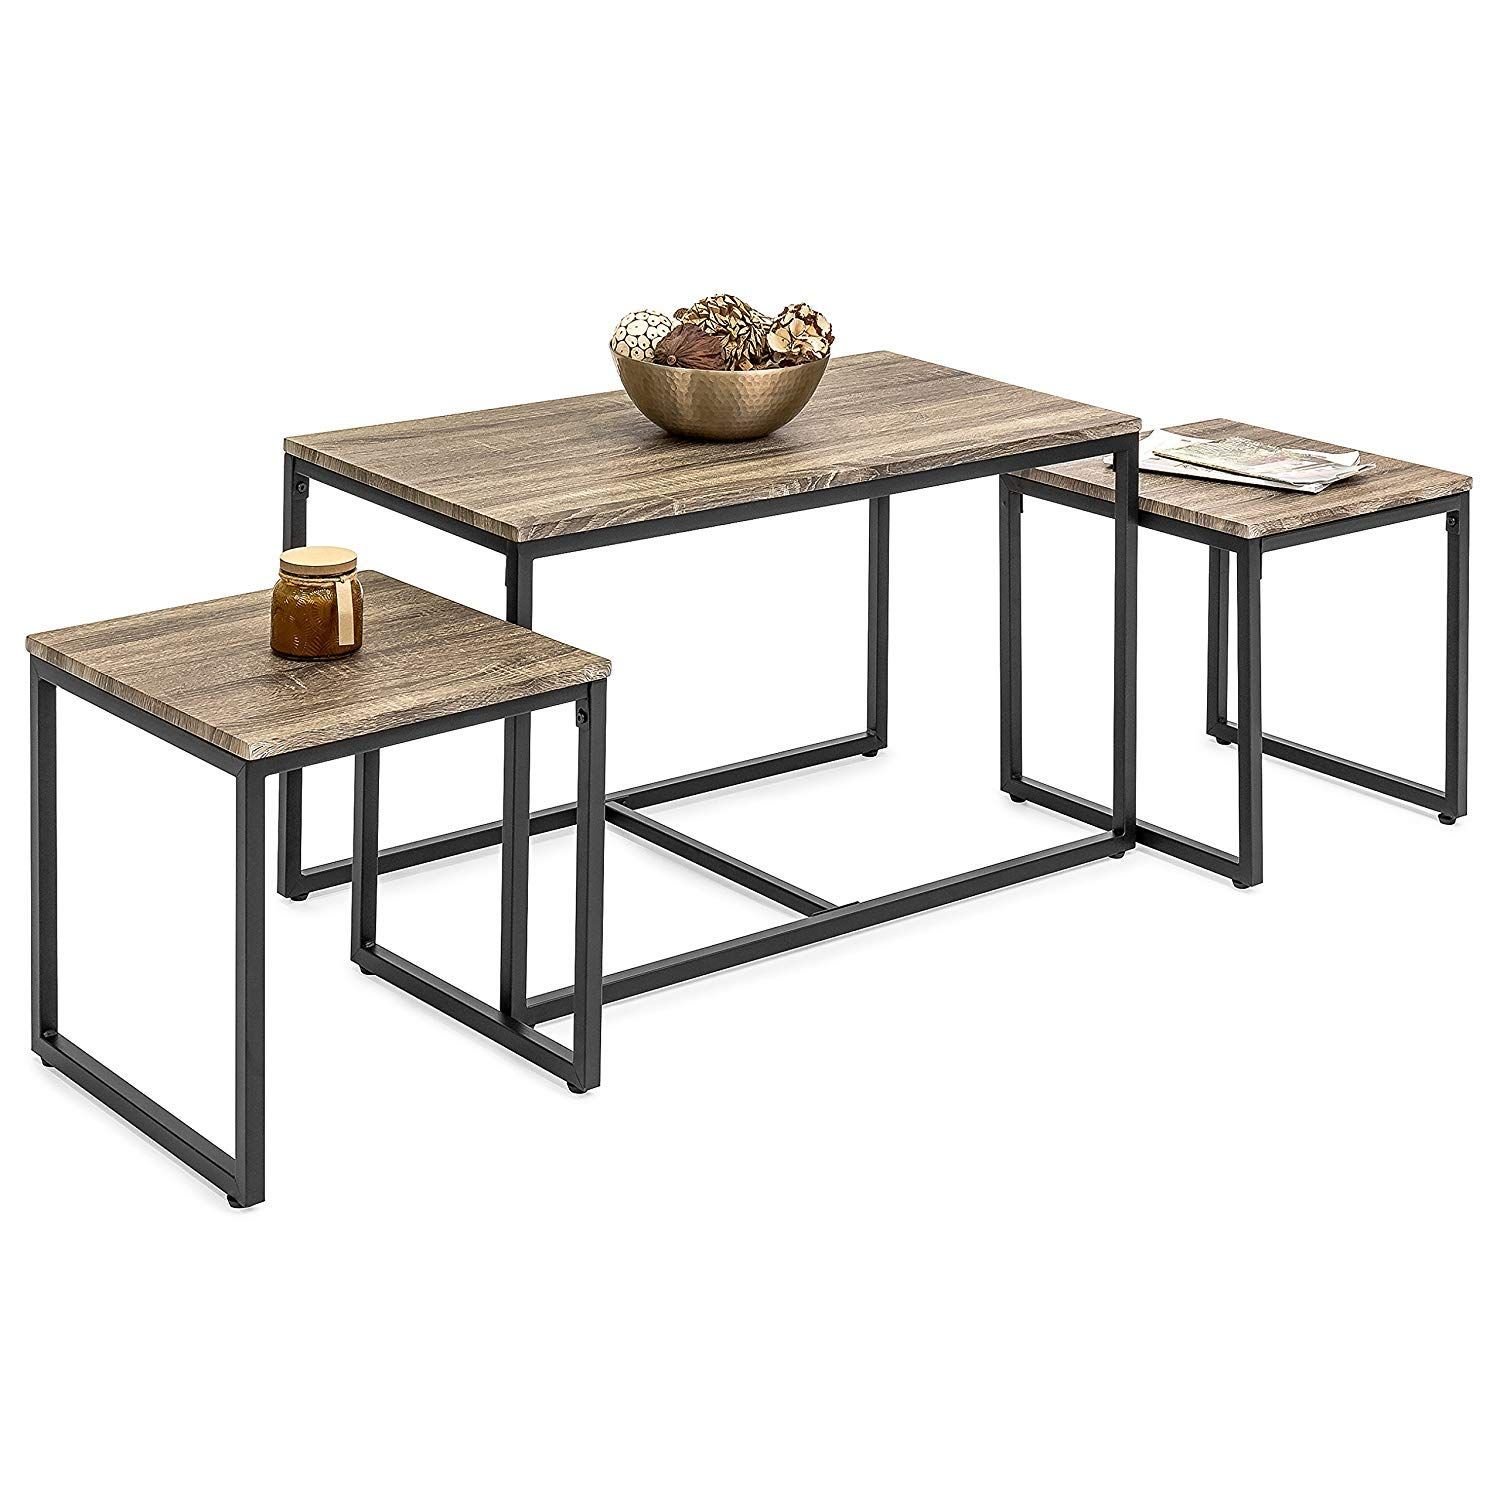 Top Rated Coastal Living Room Table Sets And Living Room Furniture We Love Beach Themed Furniture In A Living In 2020 Living Room Table Sets Living Room Accent Tables